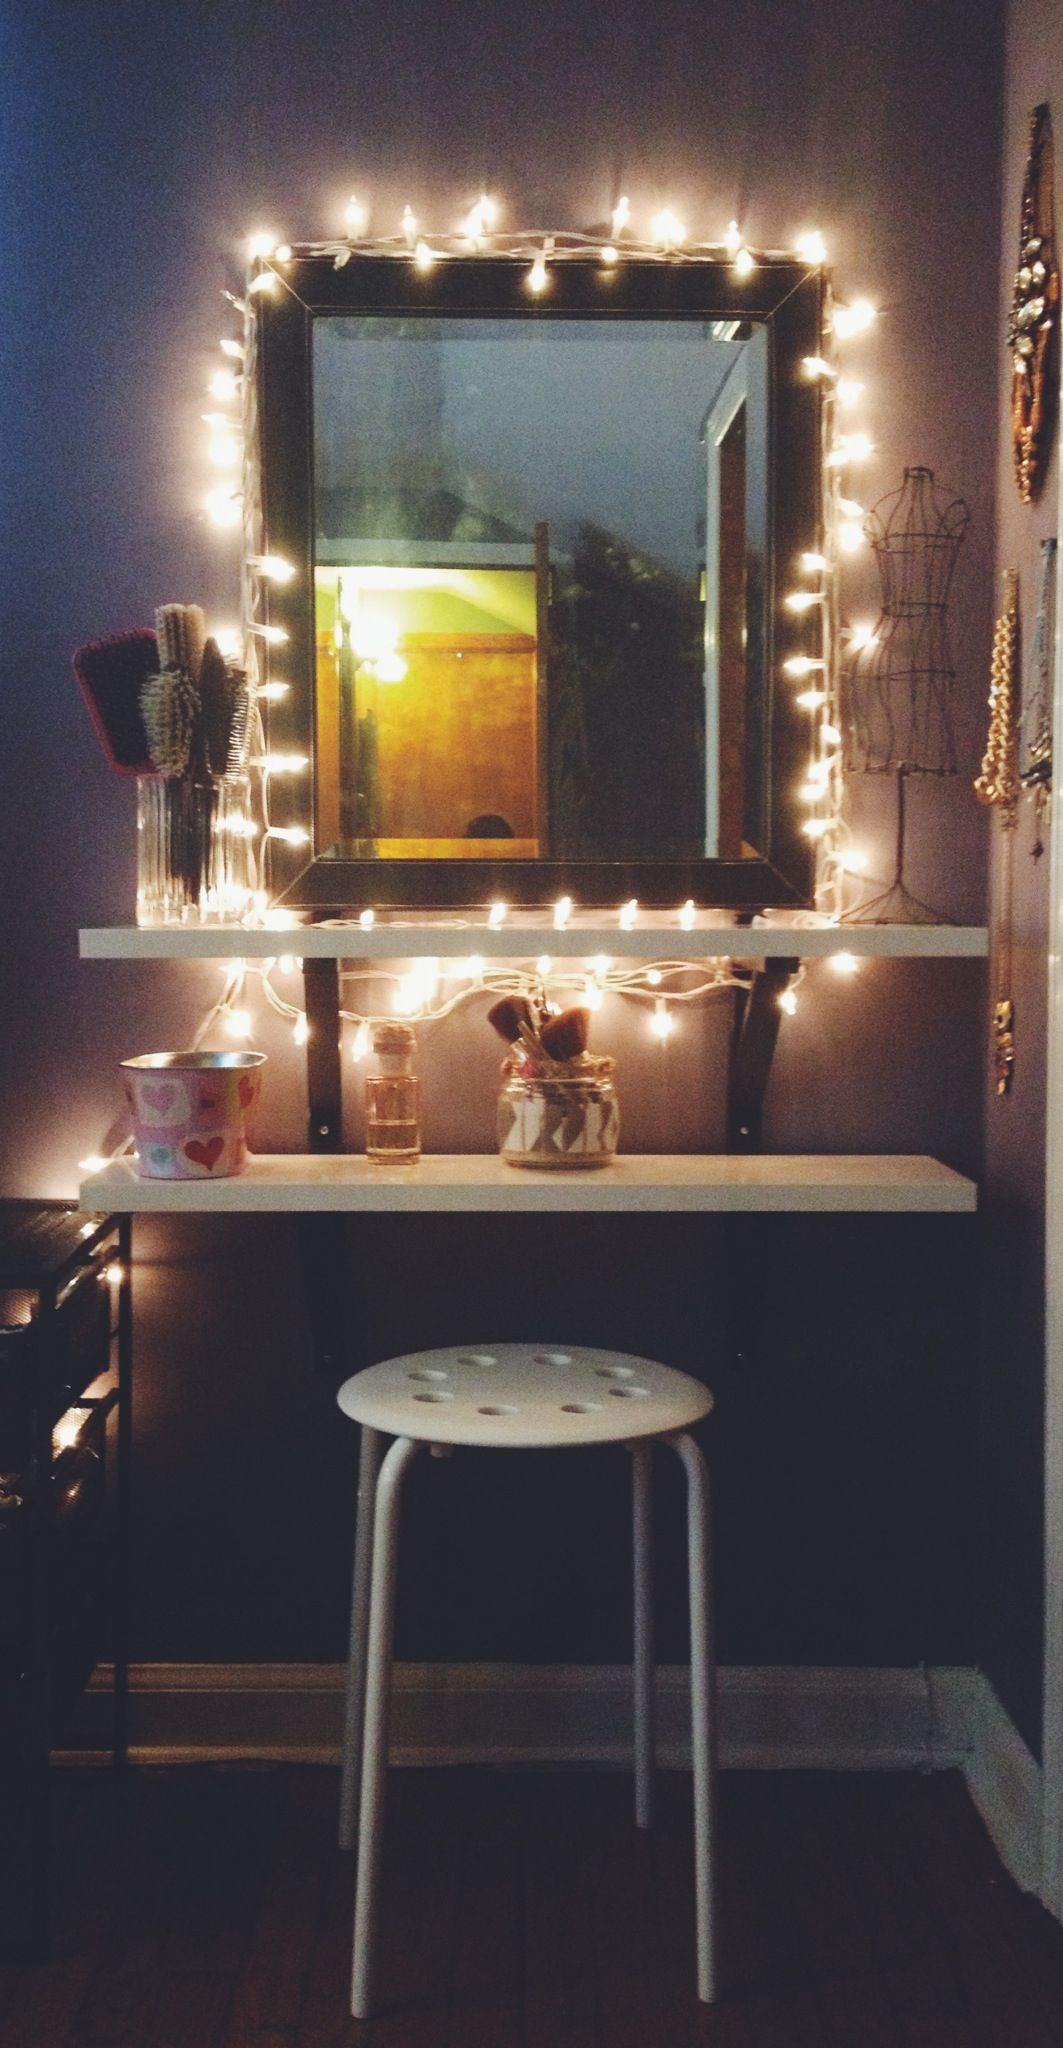 DIY Ikea hack vanity... put shelves on wall beside mirror Apartment Life Pinterest Ikea ...